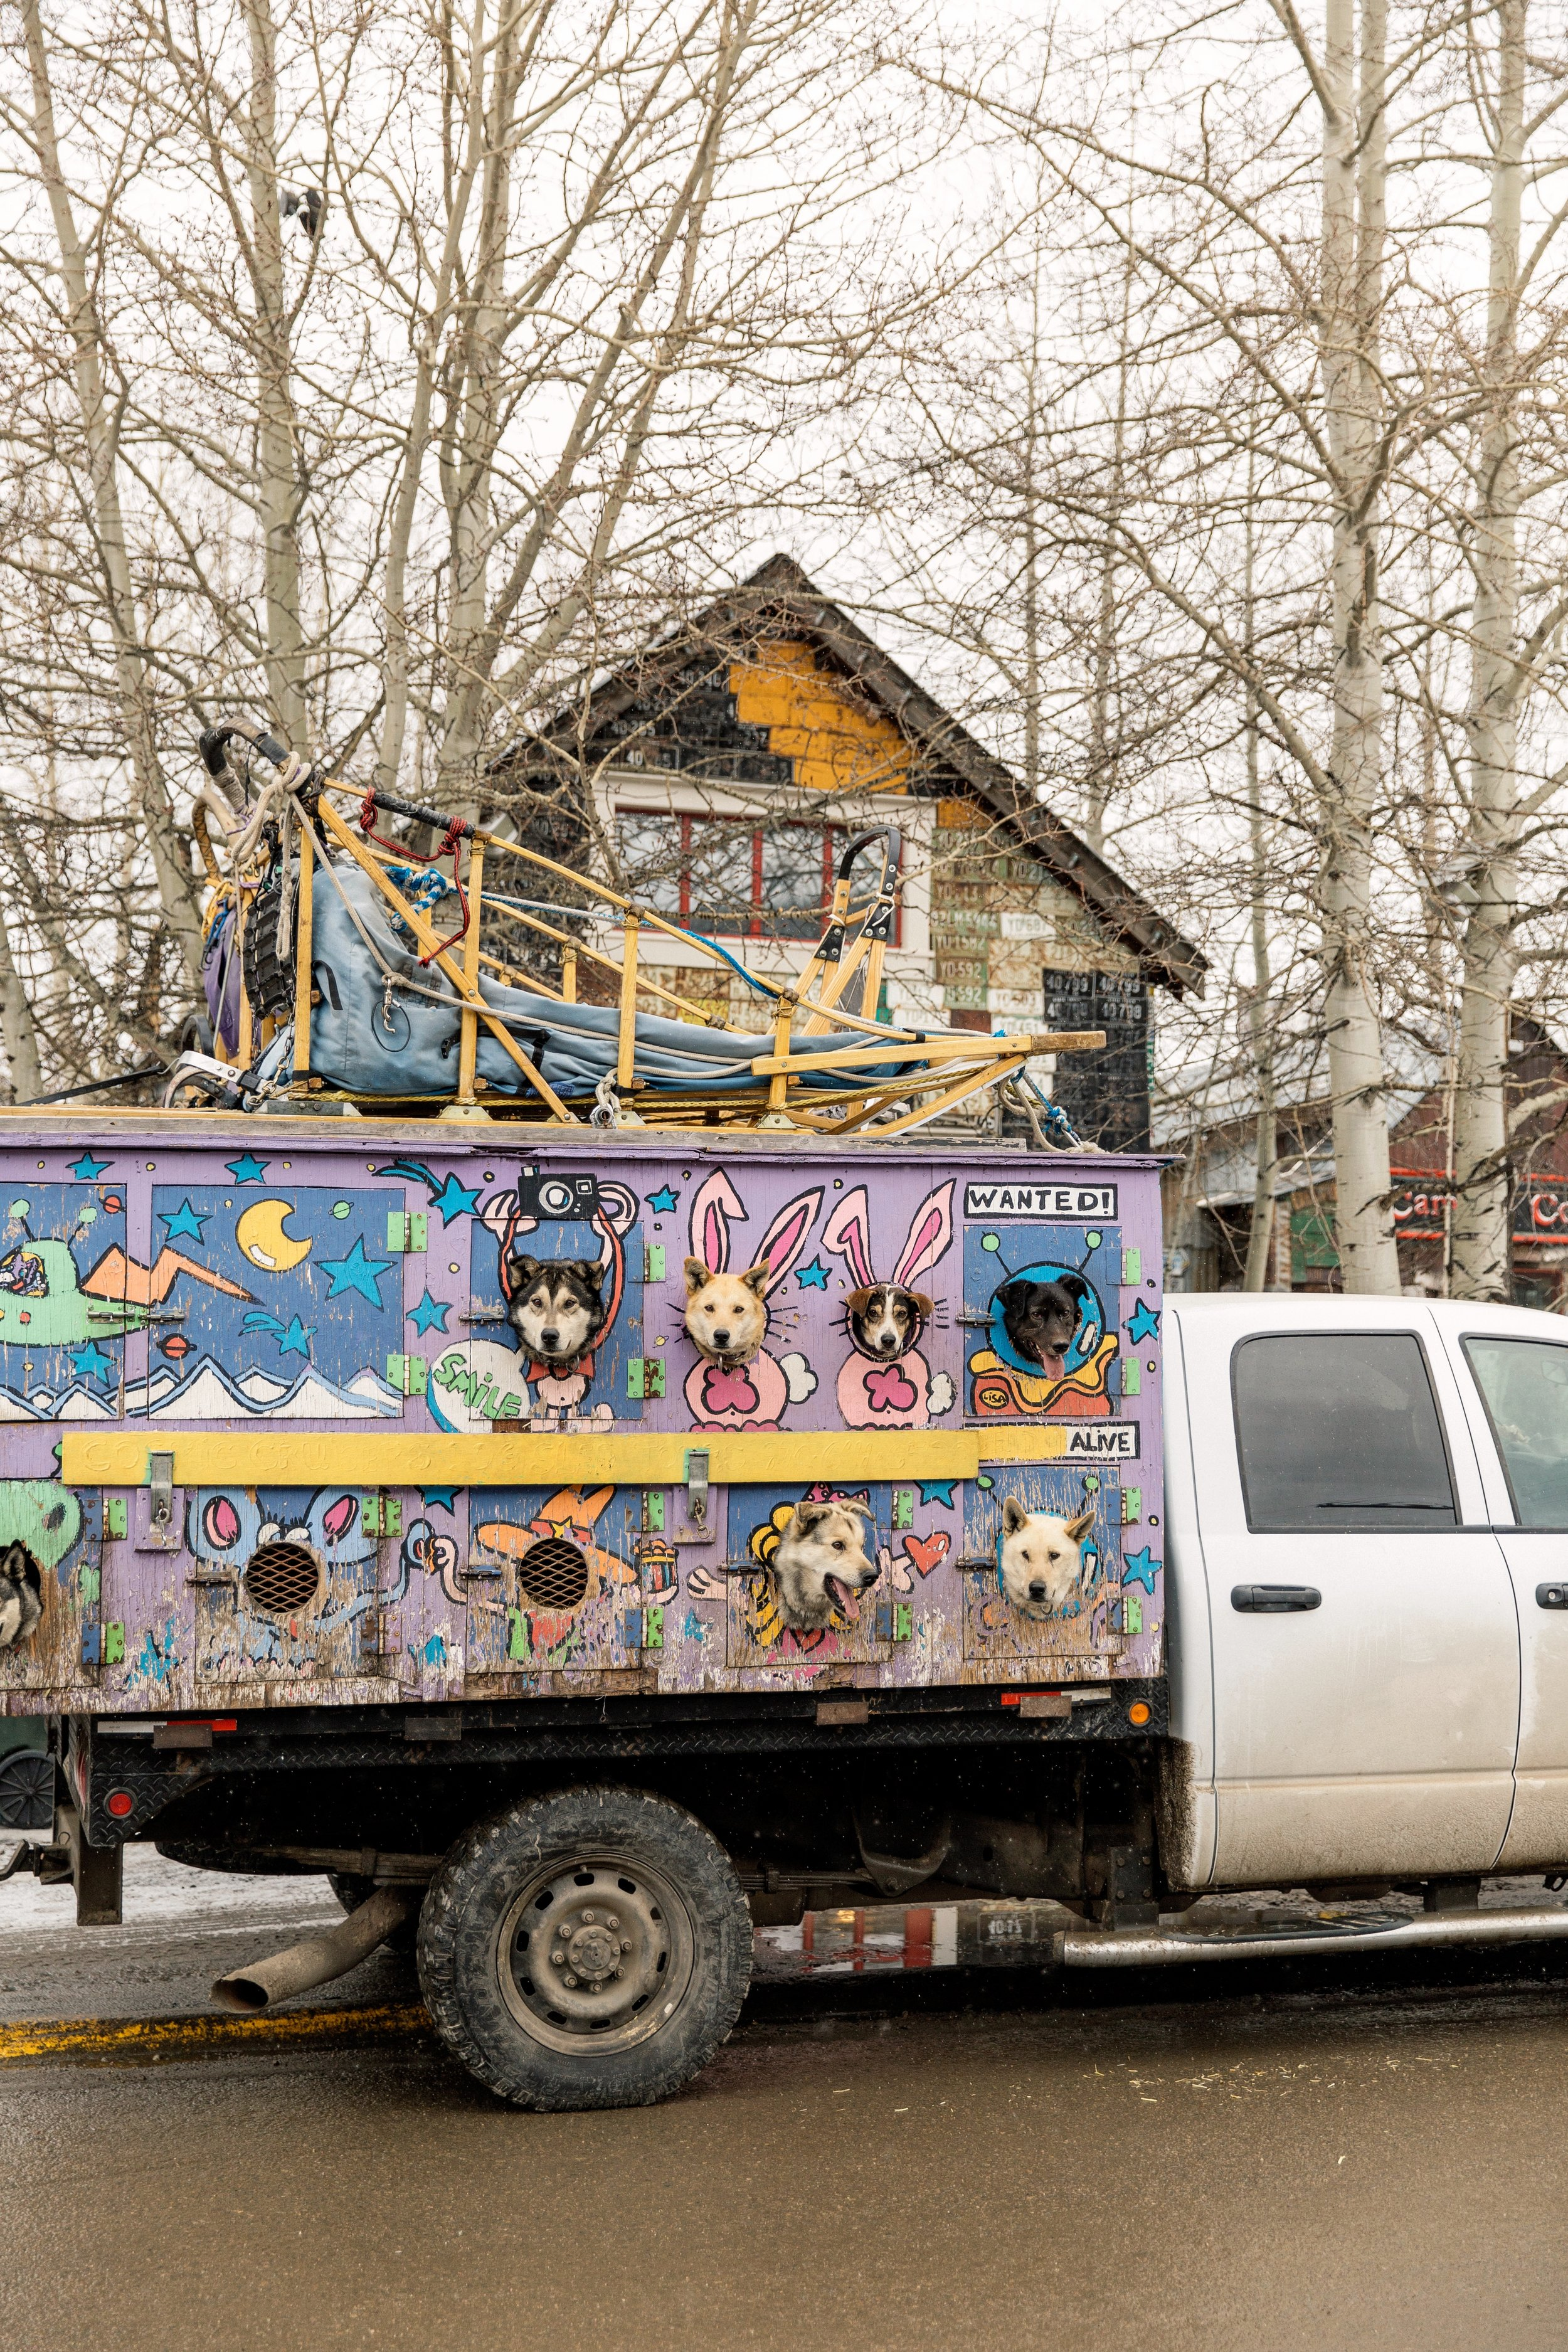 A dog sledding truck in Crested Butte, Colorado photographed for Sunset Magazine. Colorado Editorial Photographer, Denver Editorial Photographer, Montana Editorial Photographer, Boulder Editorial Photographer.